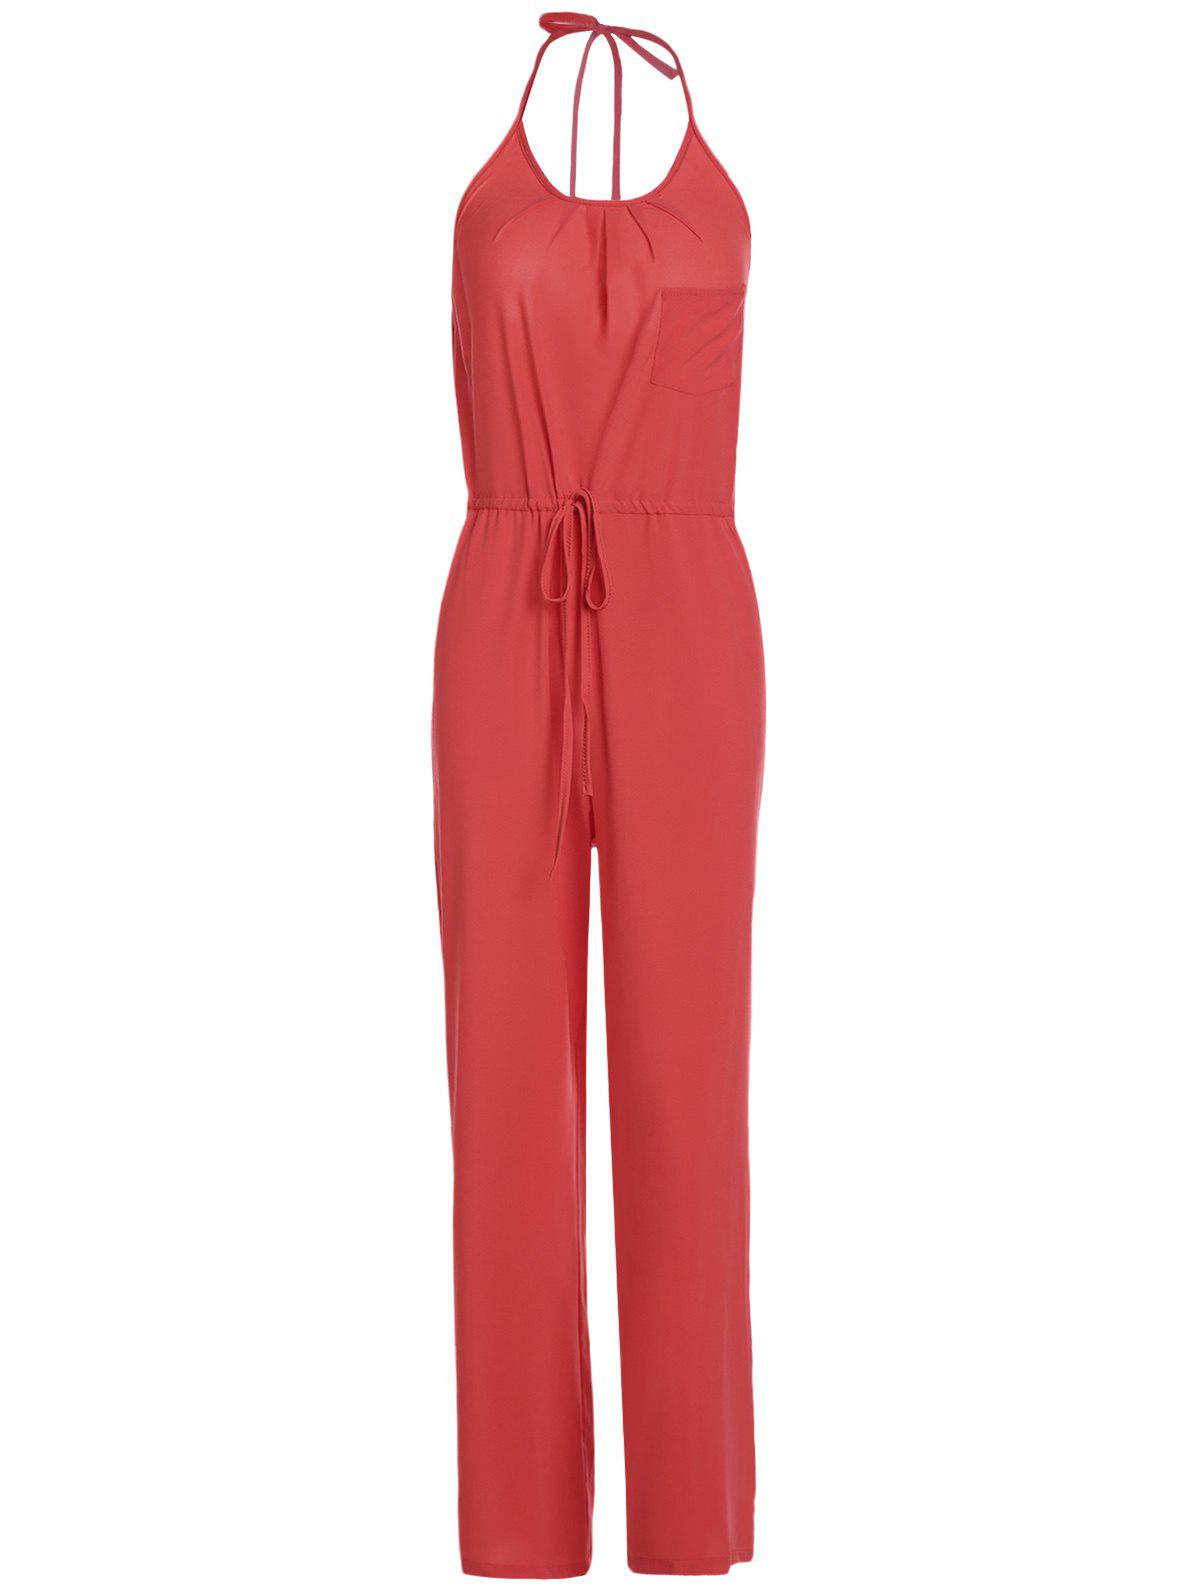 Chic Pure Color Spaghetti Strap Wide Leg Loose Jumpsuit For Women